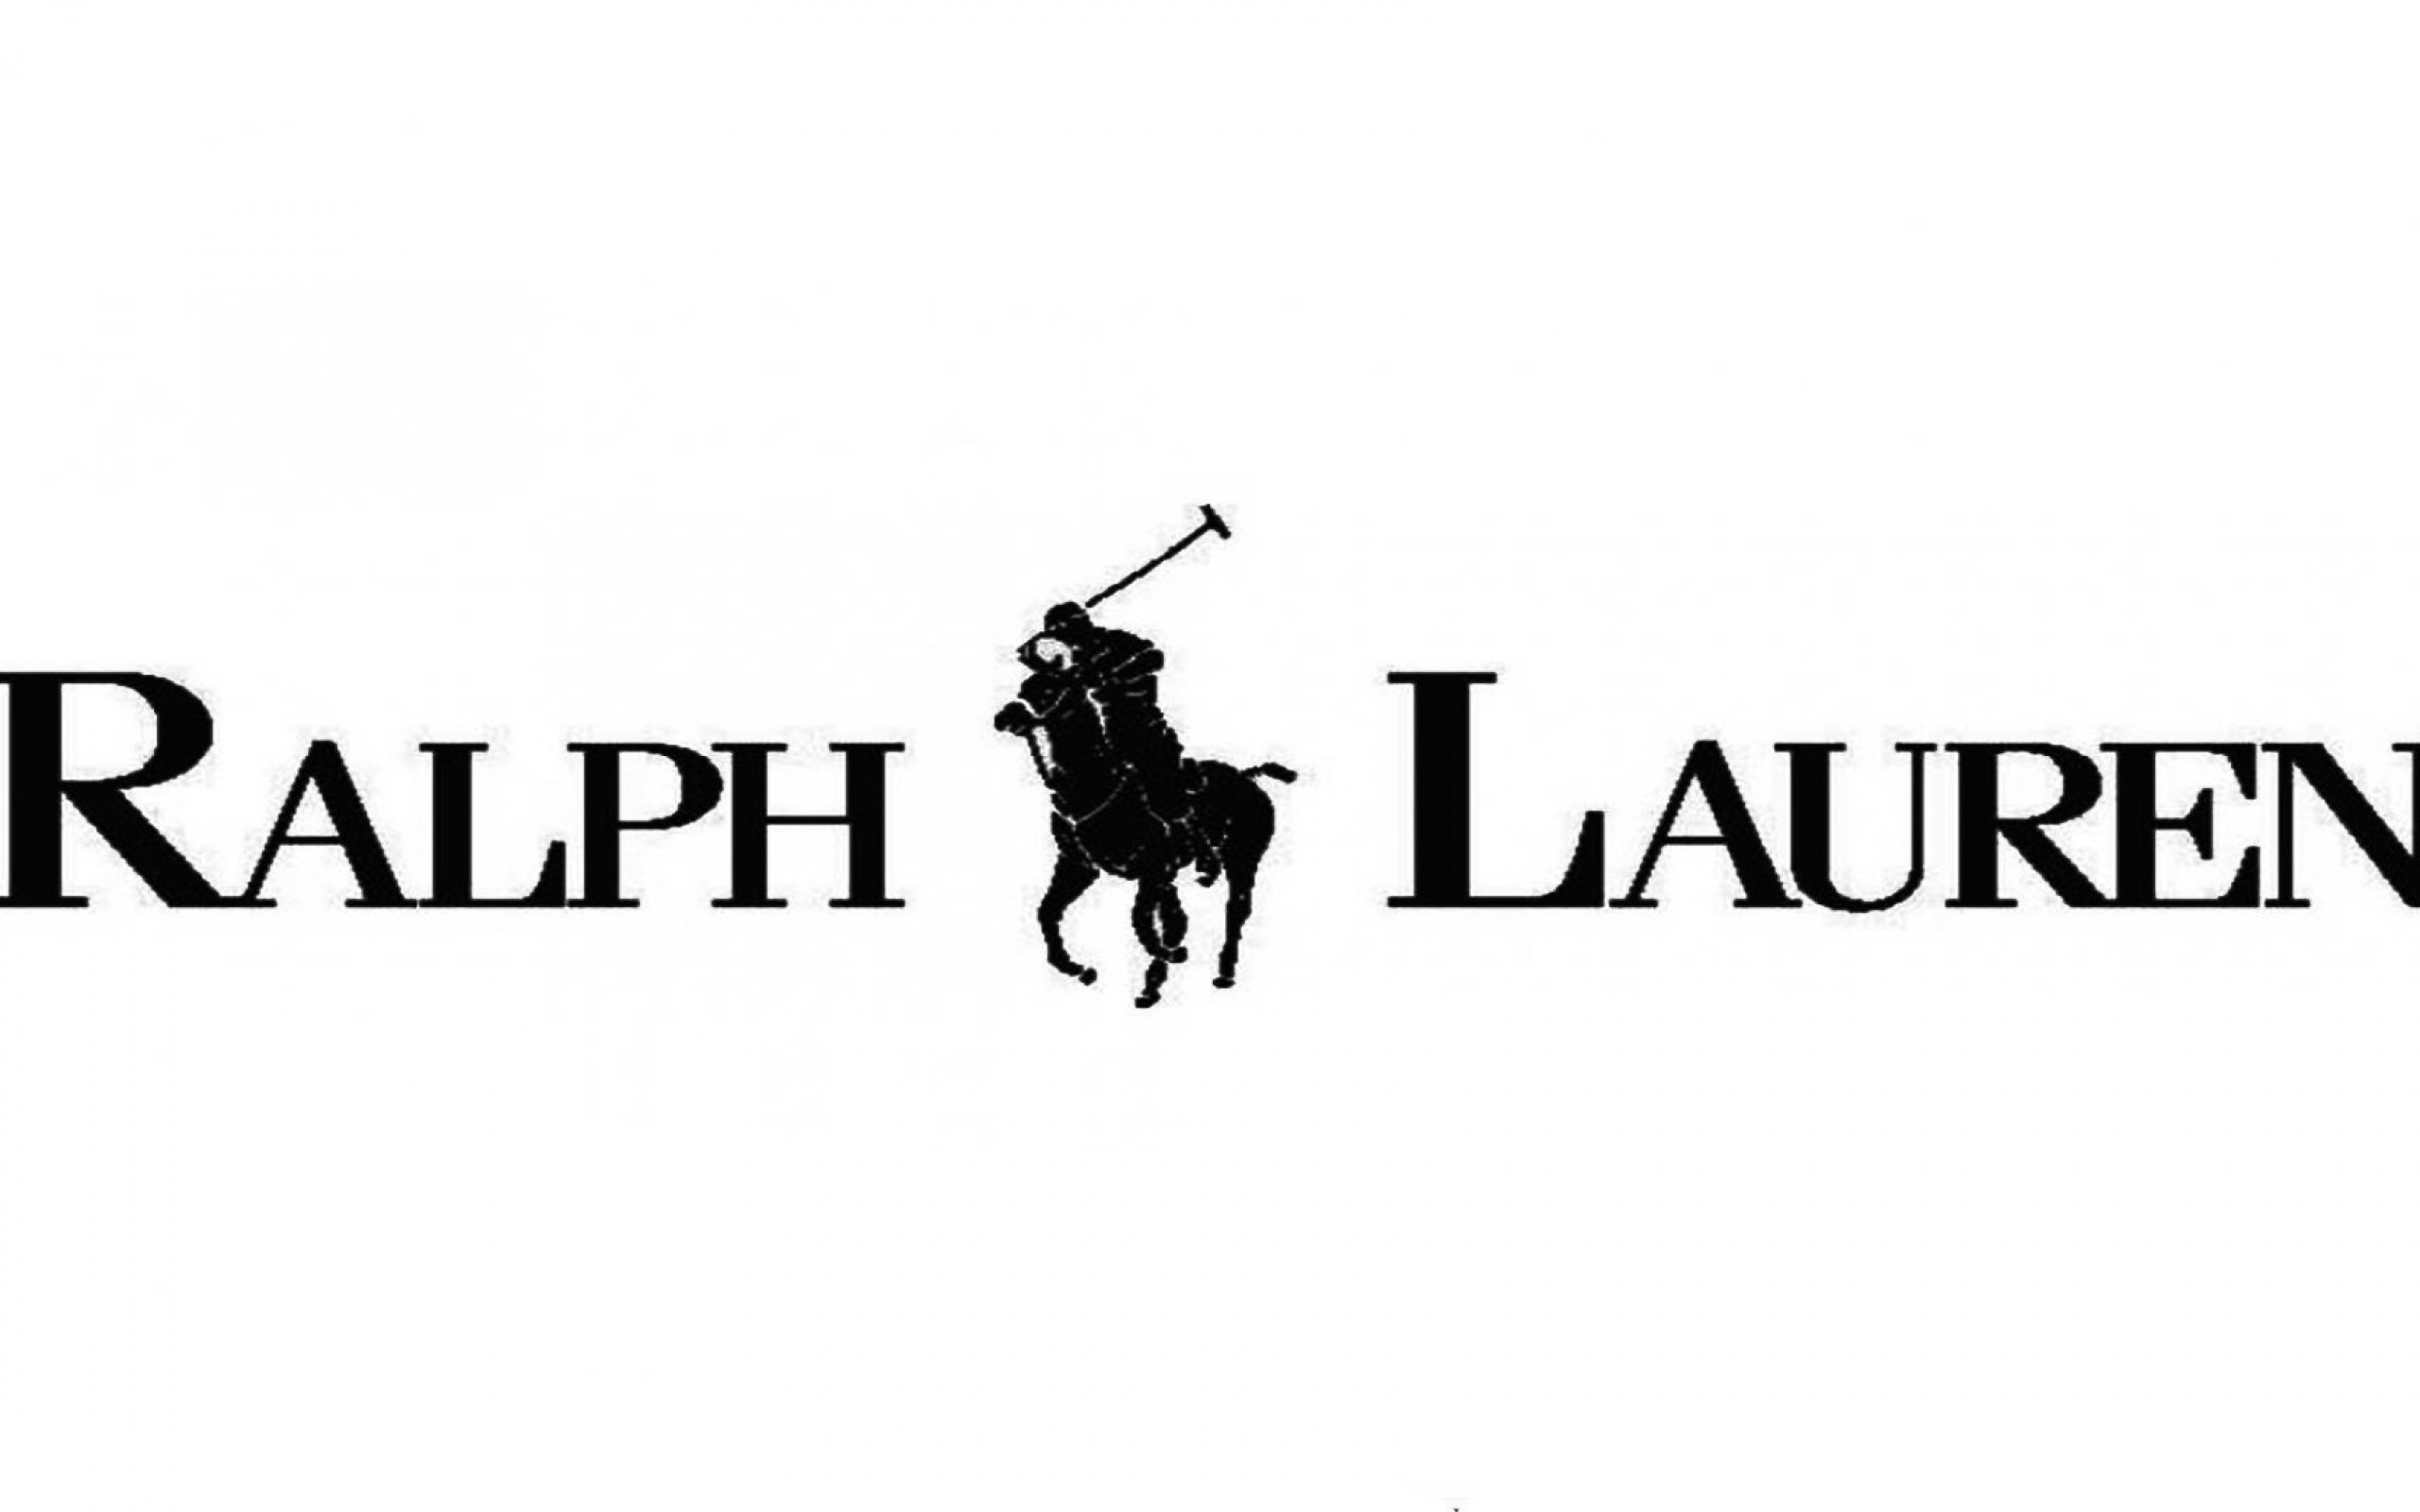 Ralph Lauren Wallpaper Hd Hd Wallpaper Ralph Lauren Logo Wallpapers Trend